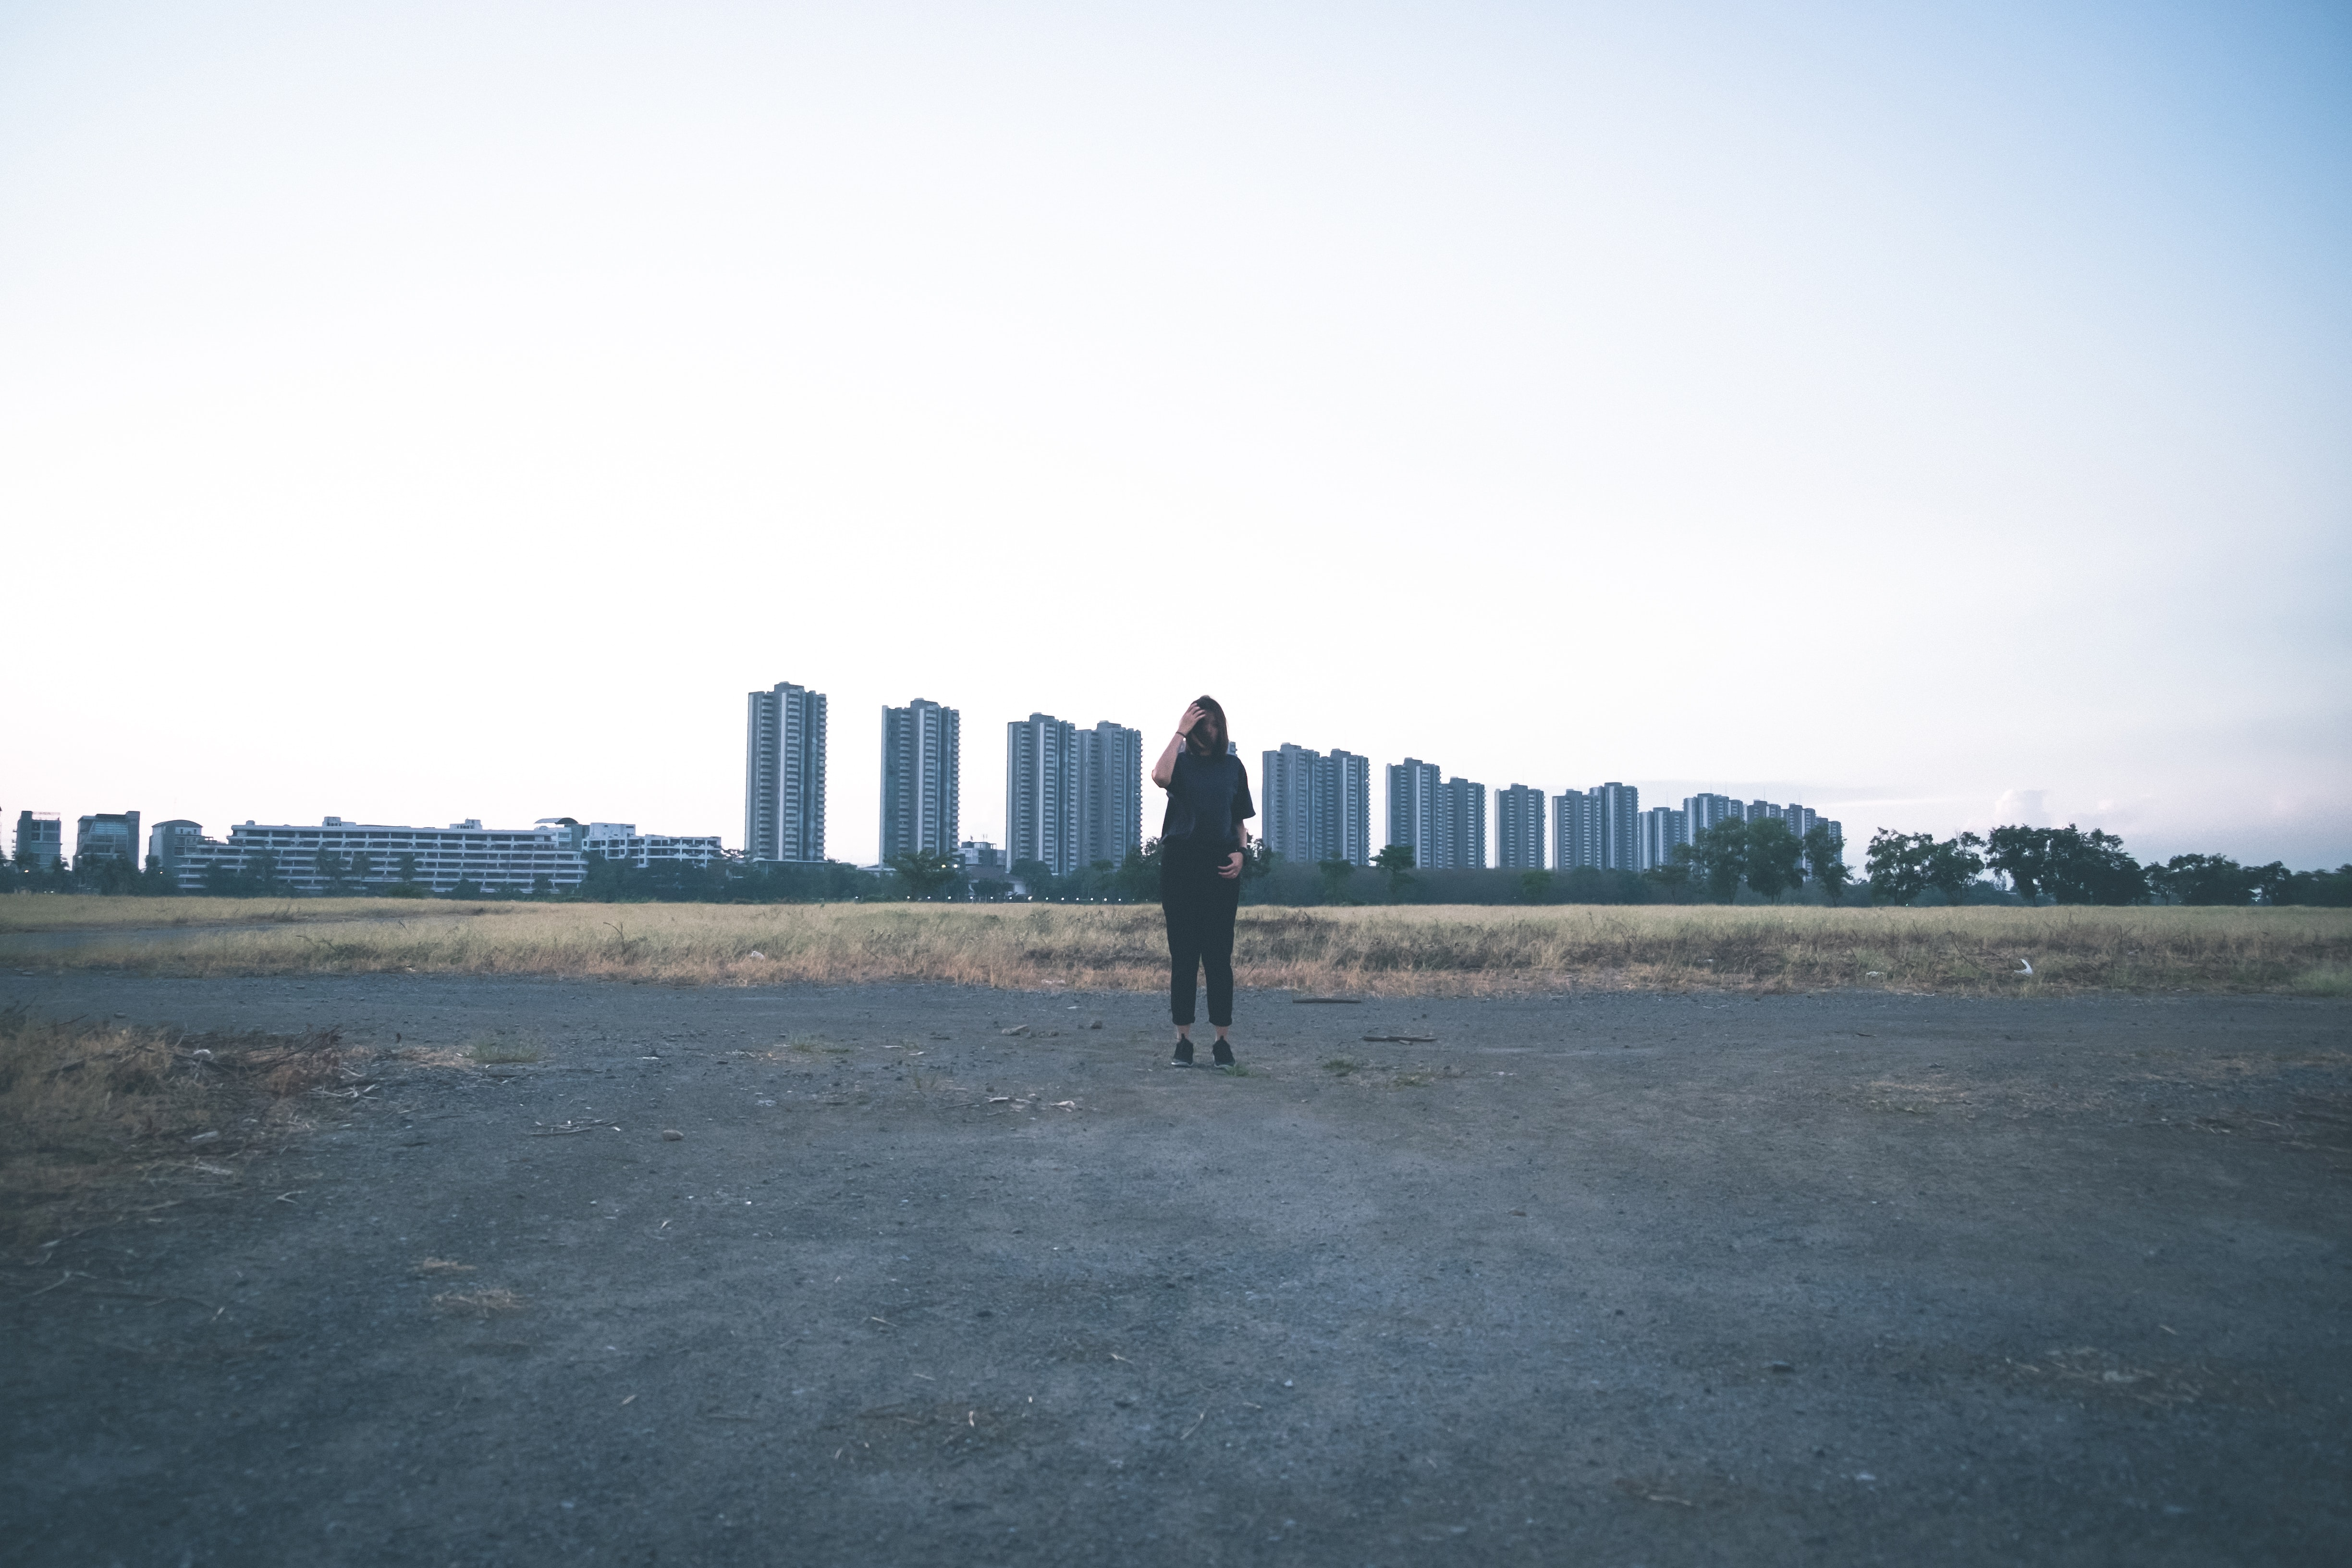 woman wearing black shirt and pants standing on field during daytime